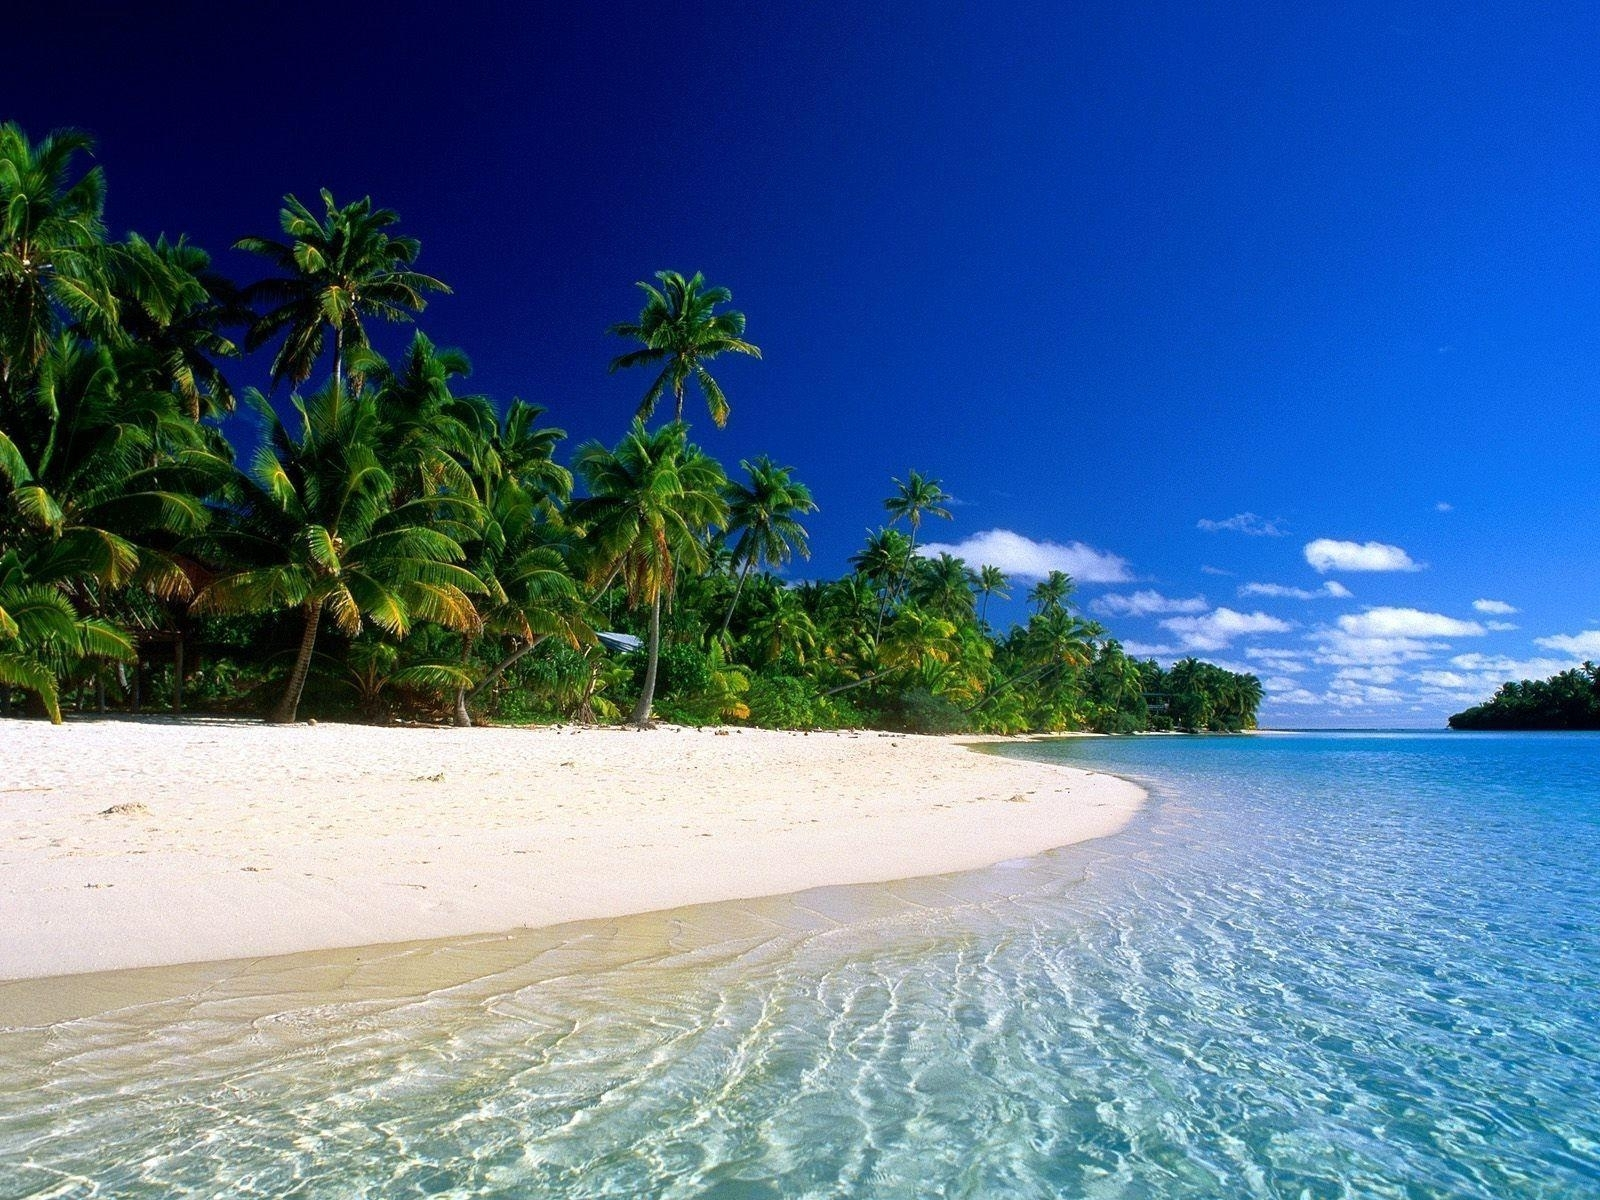 most beautiful beach wallpapers - wallpaper cave